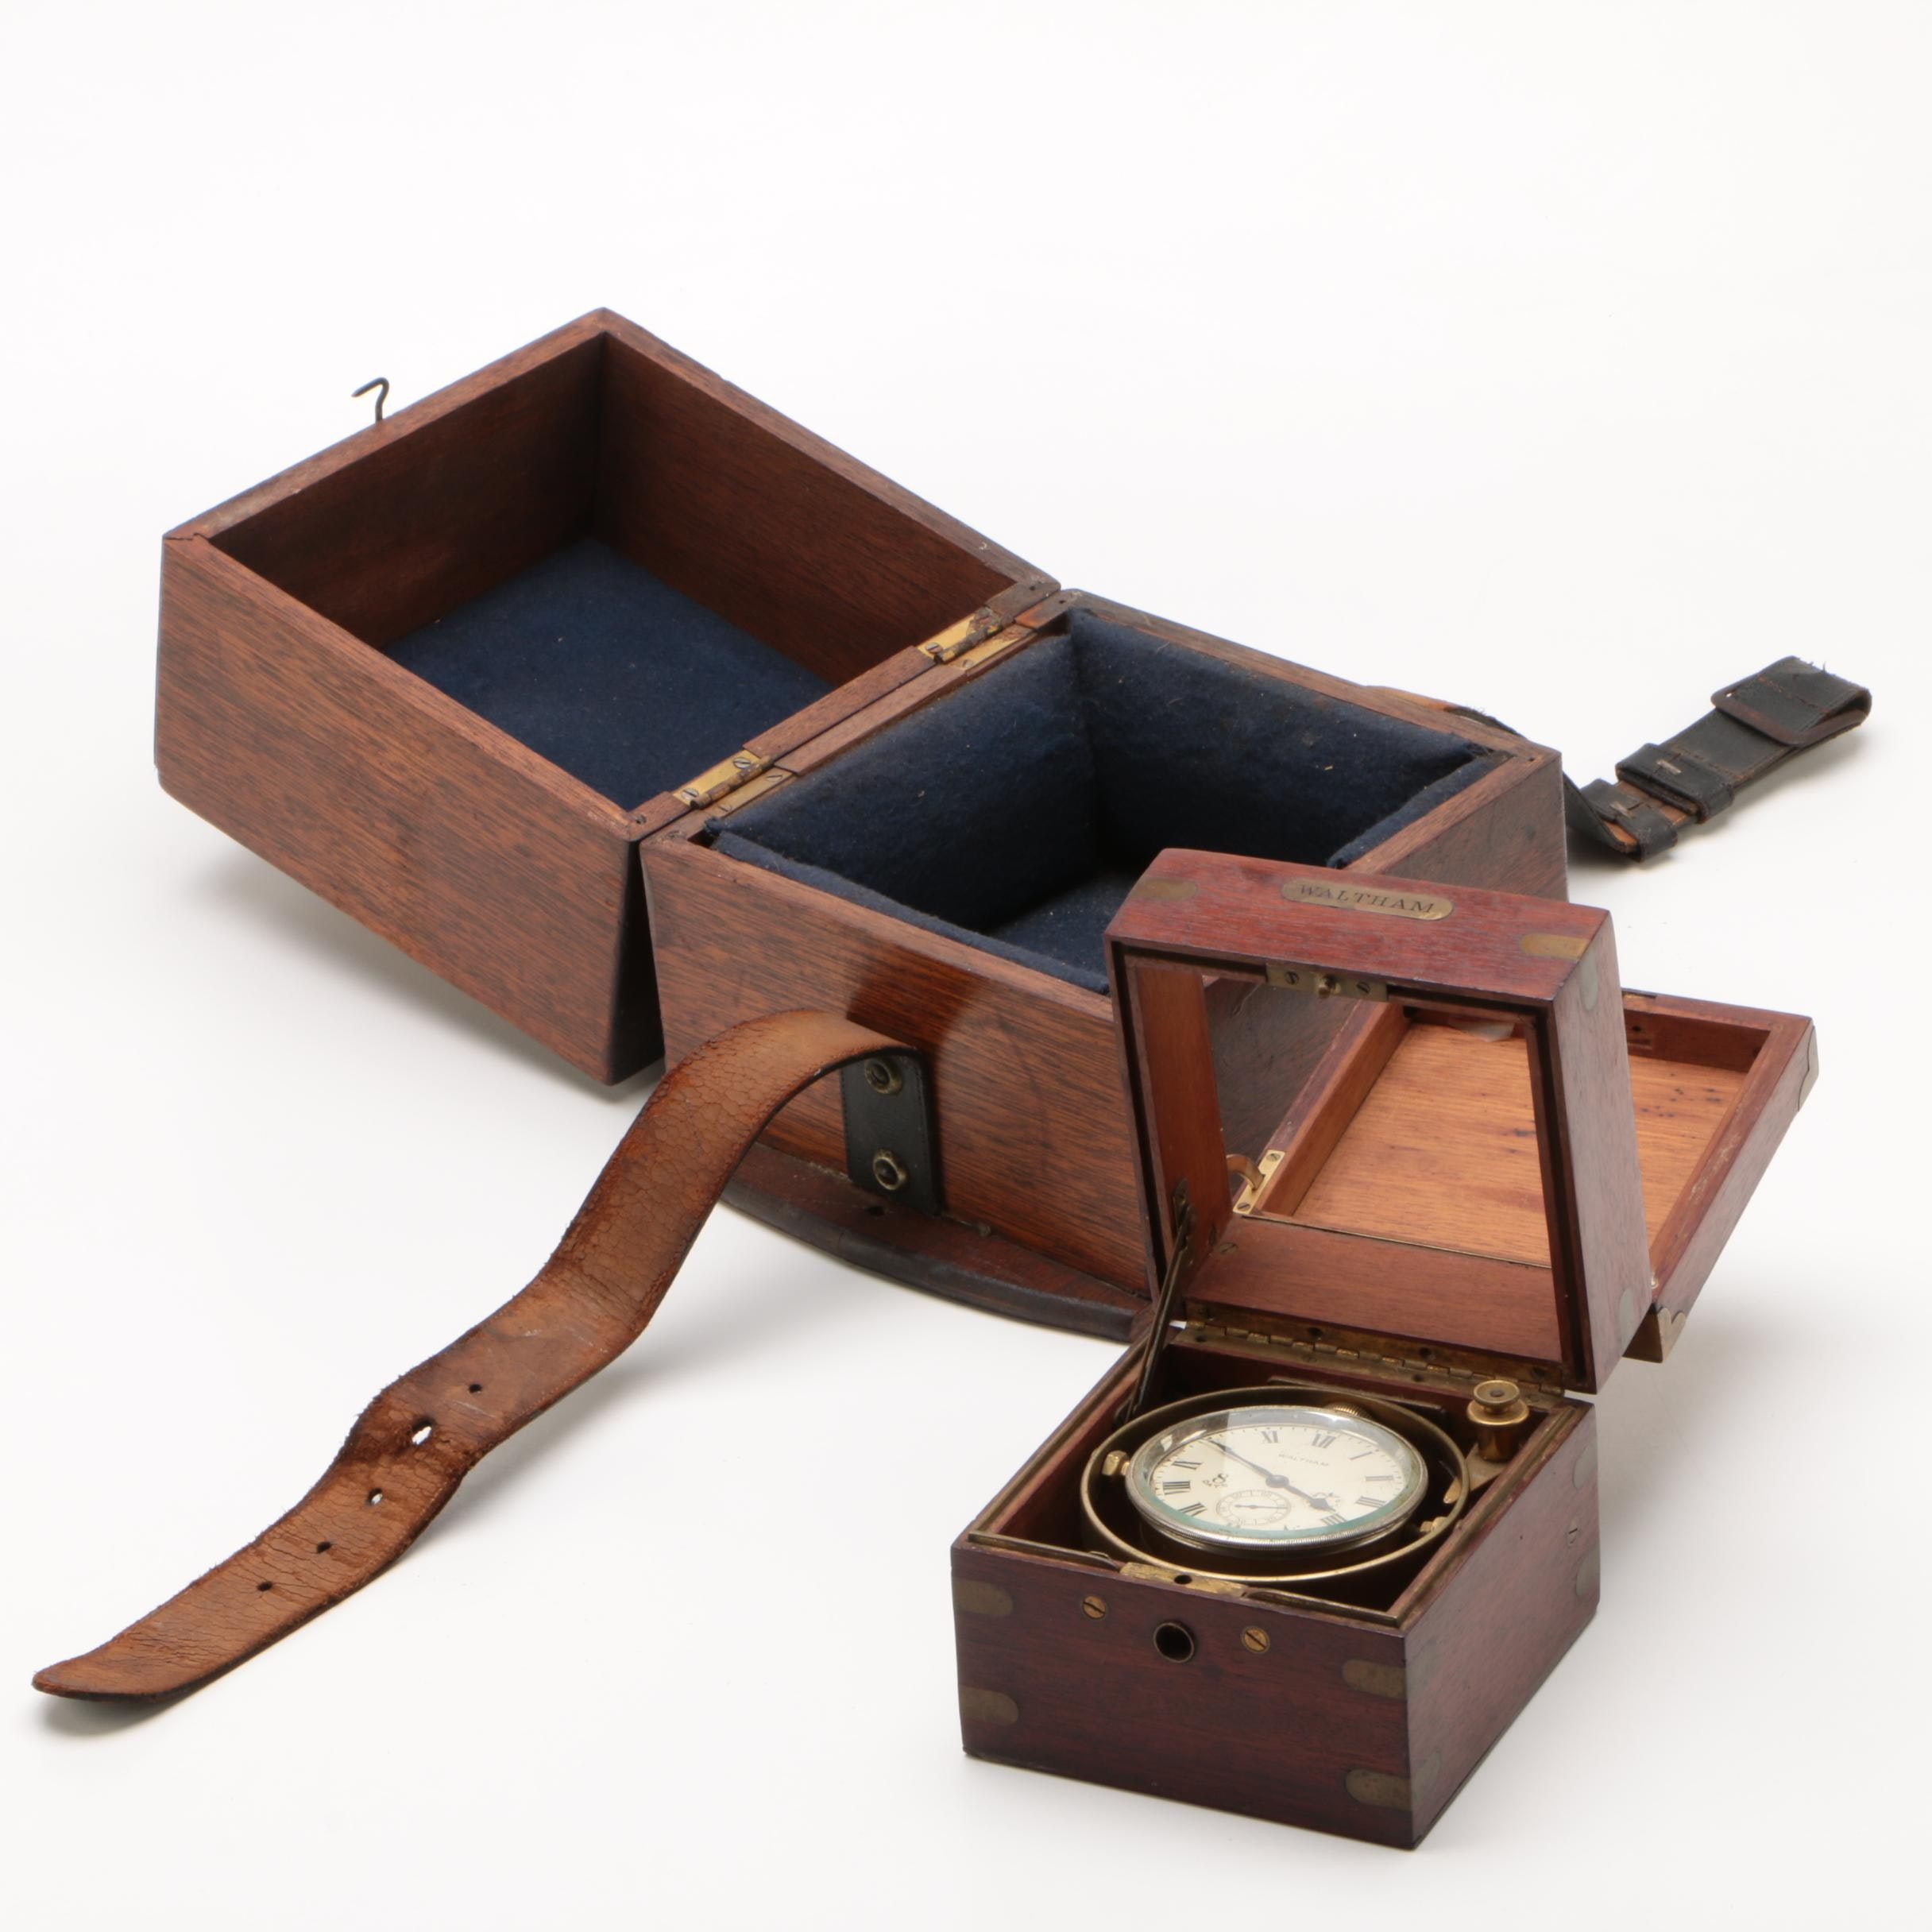 Waltham Eight Day Marine Chronometer with Mahogany Case, Early 20th Century